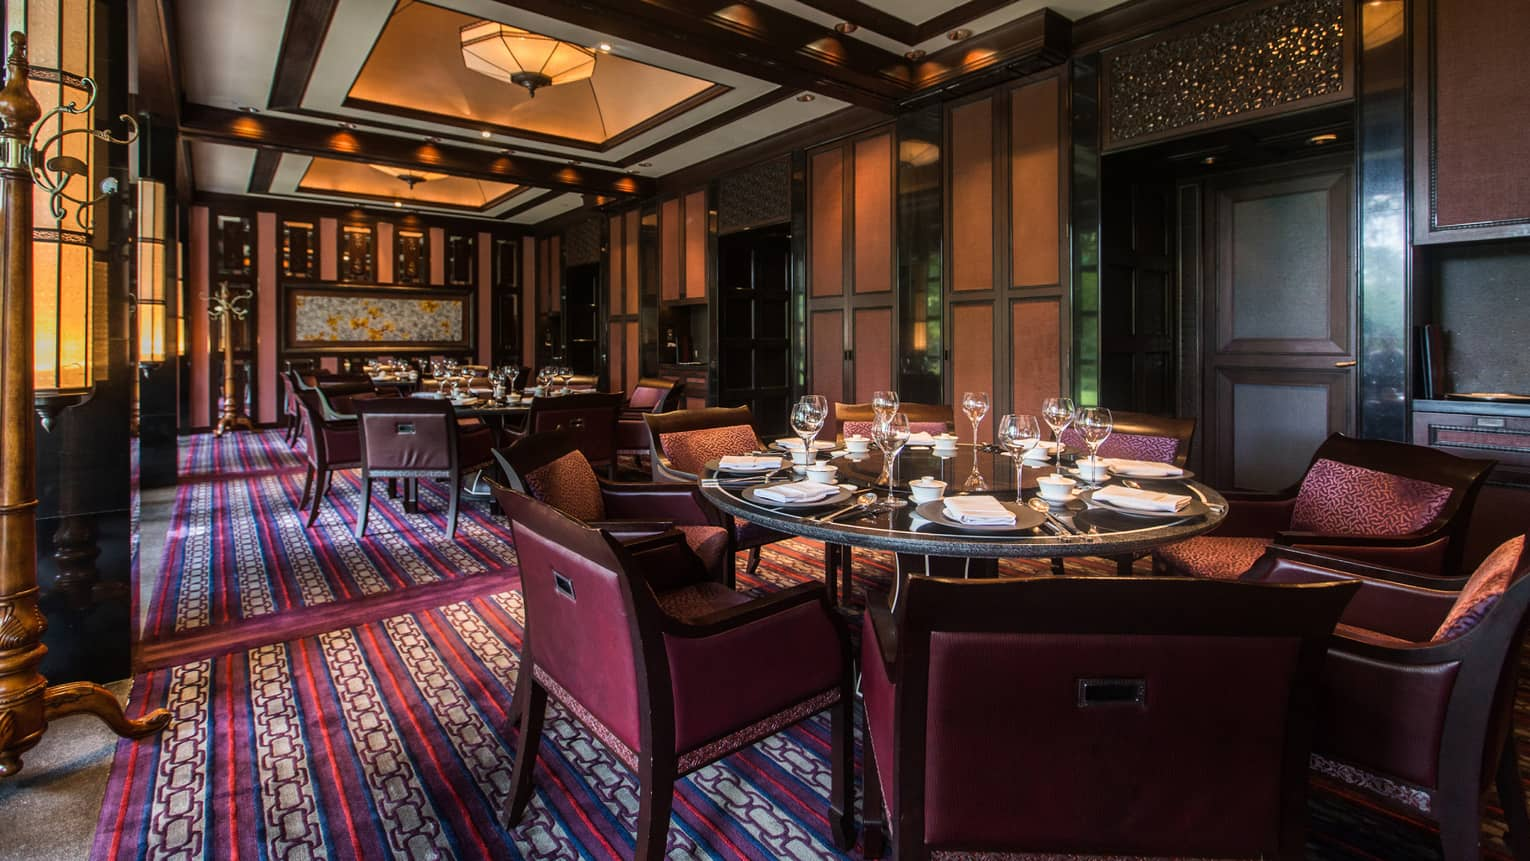 Dining tables, chairs, red-and-blue patterned rug in Jin Sha dining room